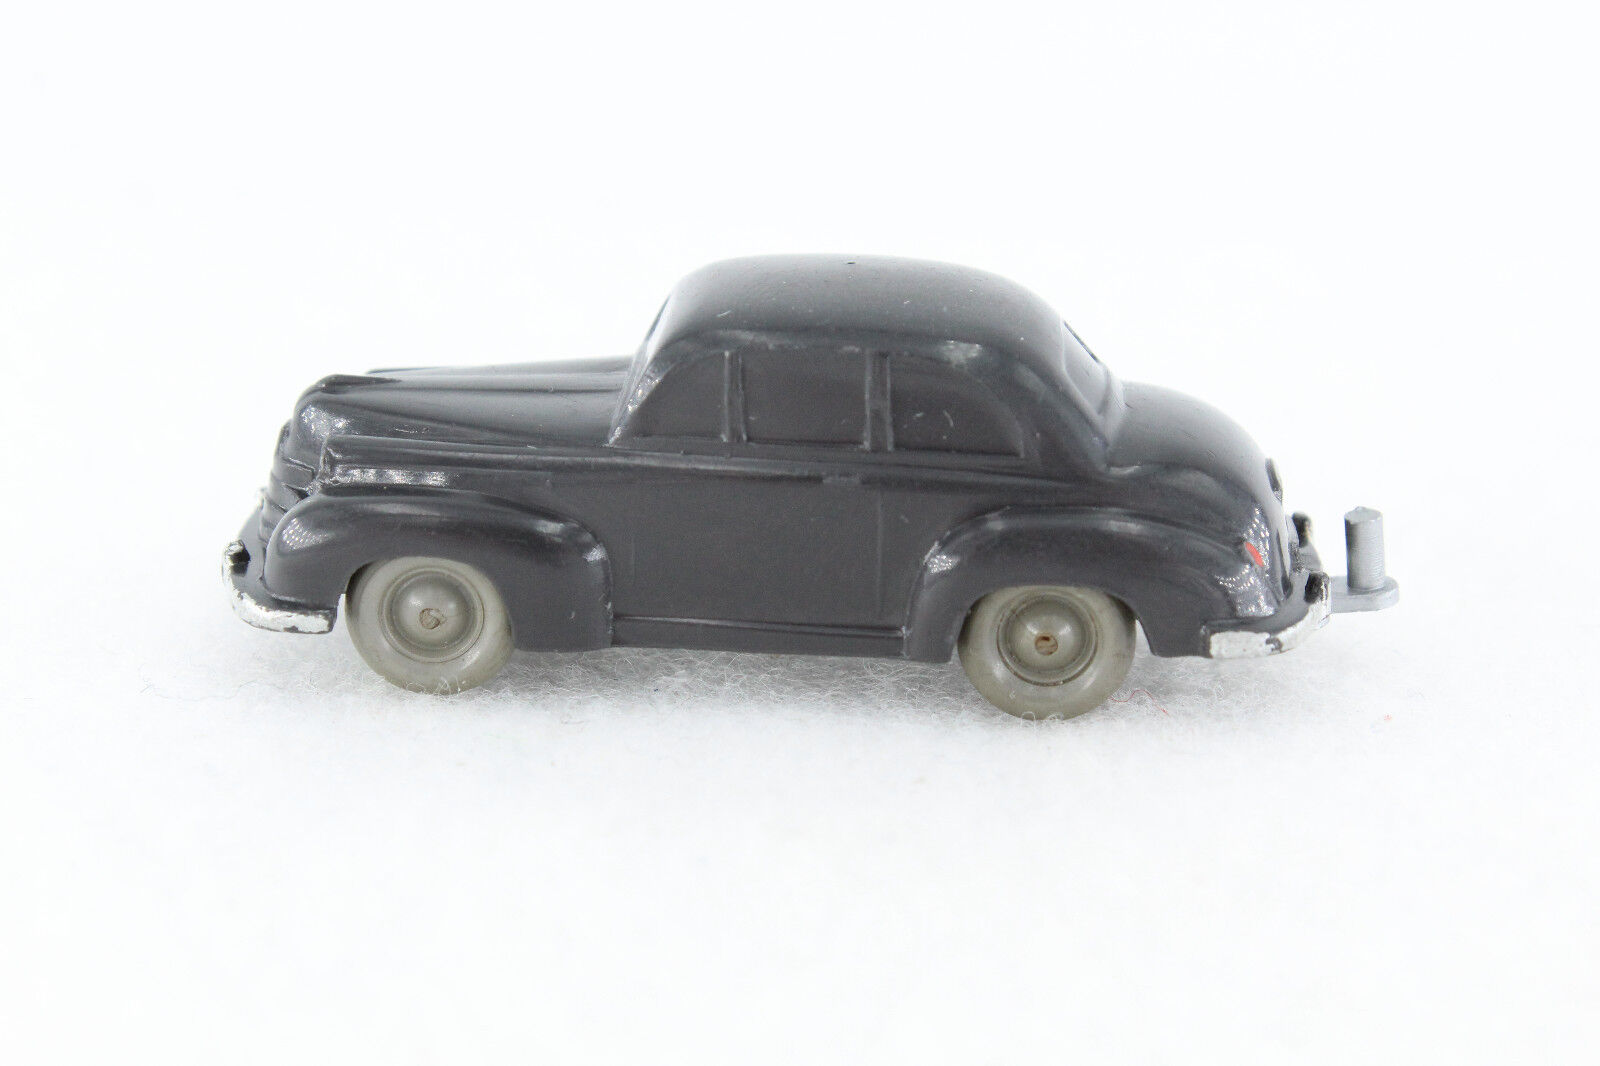 A.S.S Wiking dépourvus voitures Opel Olympia typ2 typ2 typ2 Anthracite GK 90 2o CS 118 1k 1 WTOP 17ebe1